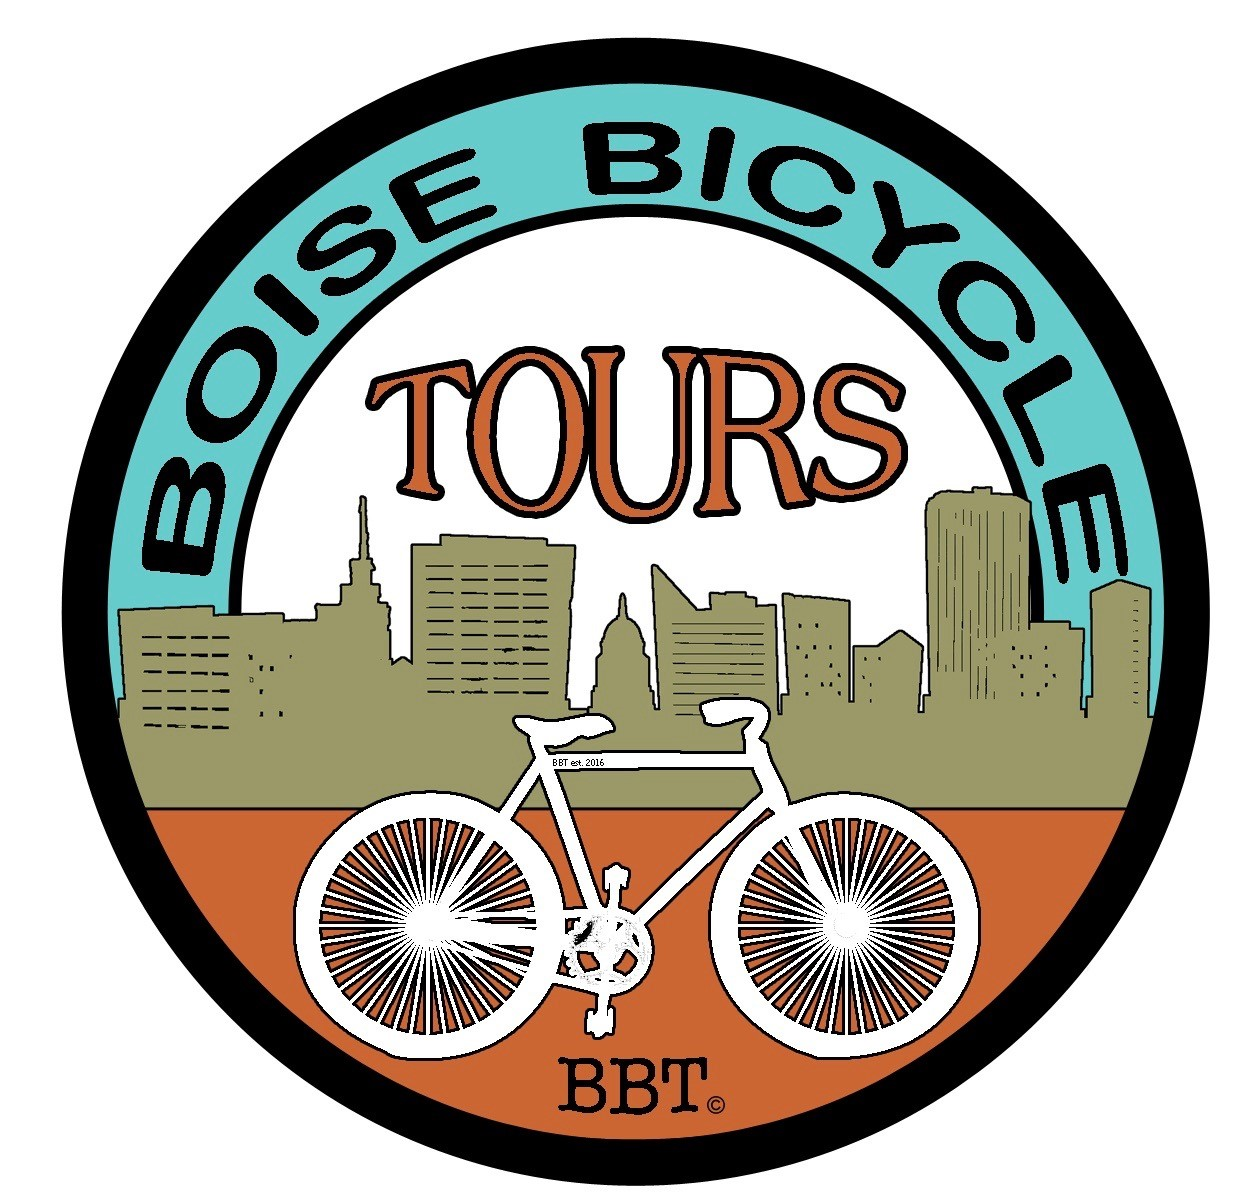 Boise Bicycle Tours (BBT)